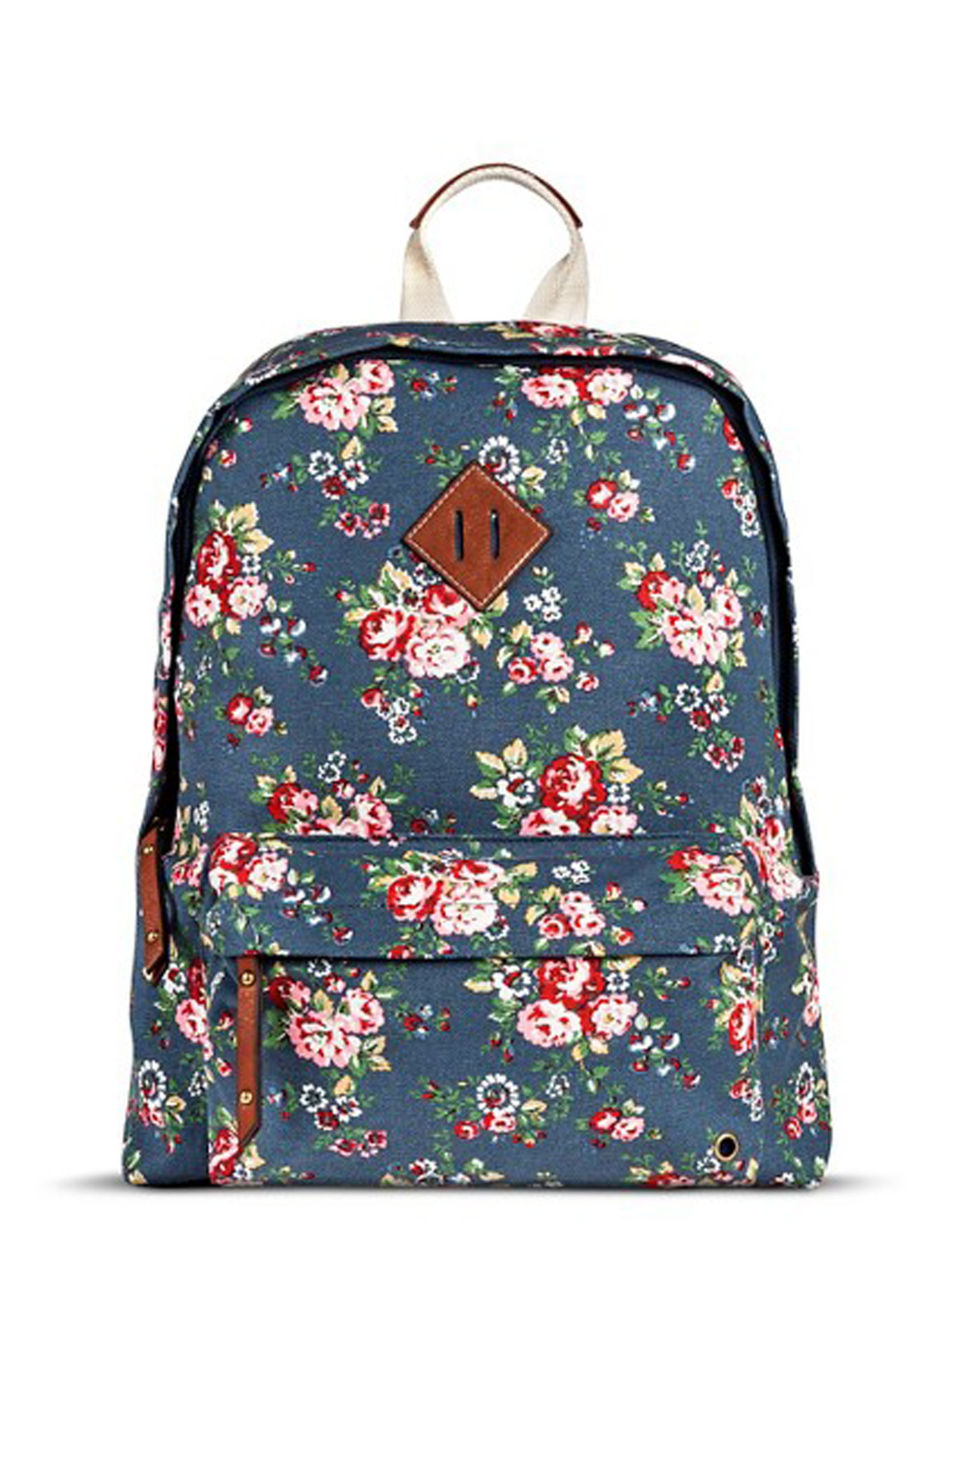 Cute Backpacks For Teen Girls 3ZWggSqz